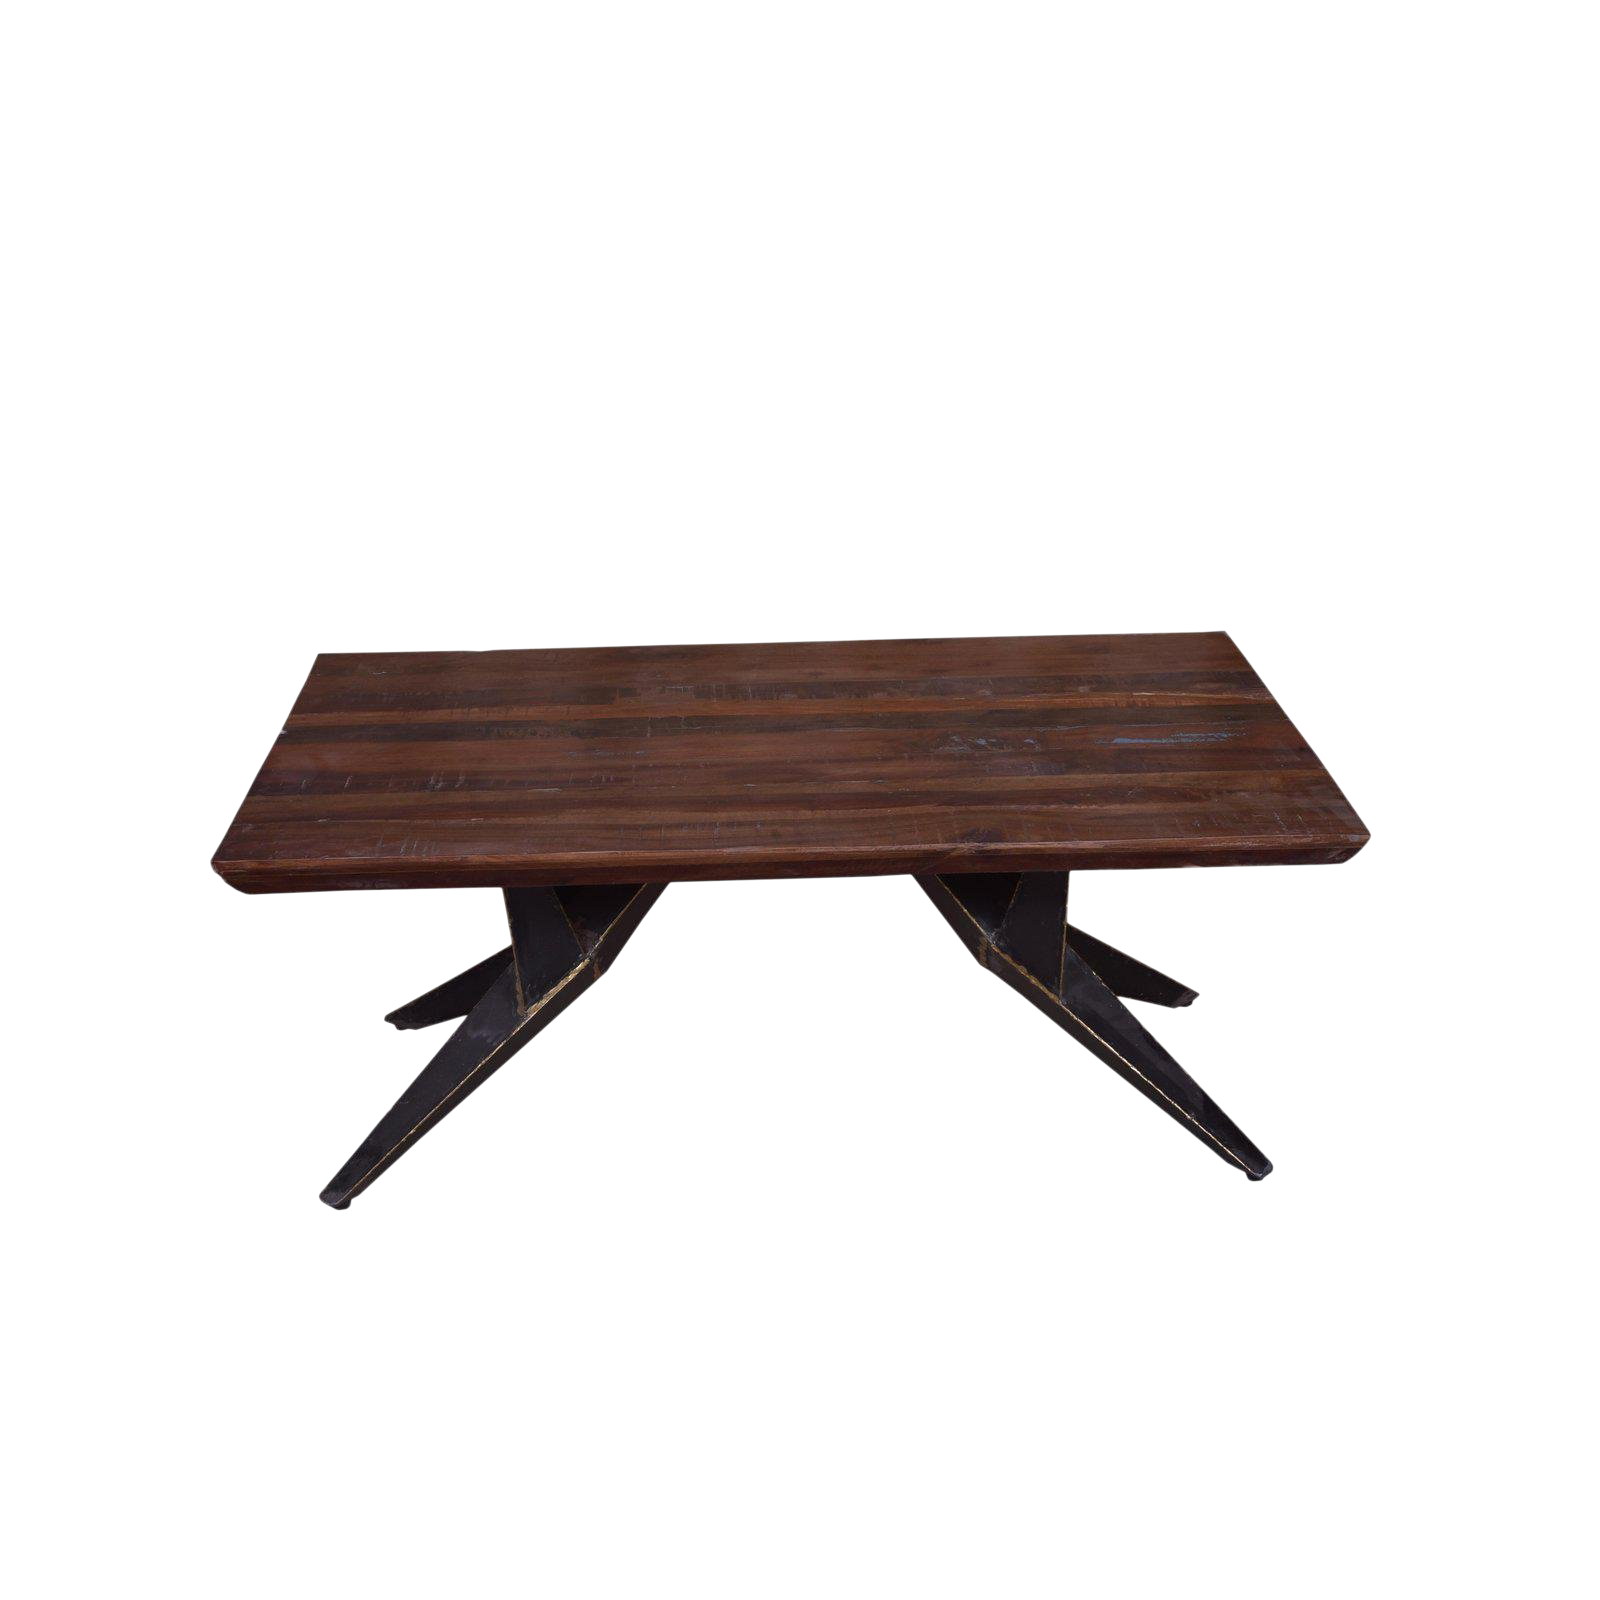 Faunia Coffee Table With Iron Legs Living Room Wooden Top Rustic Natural Finish Wood And Metal Home Furniture Natural Chairish